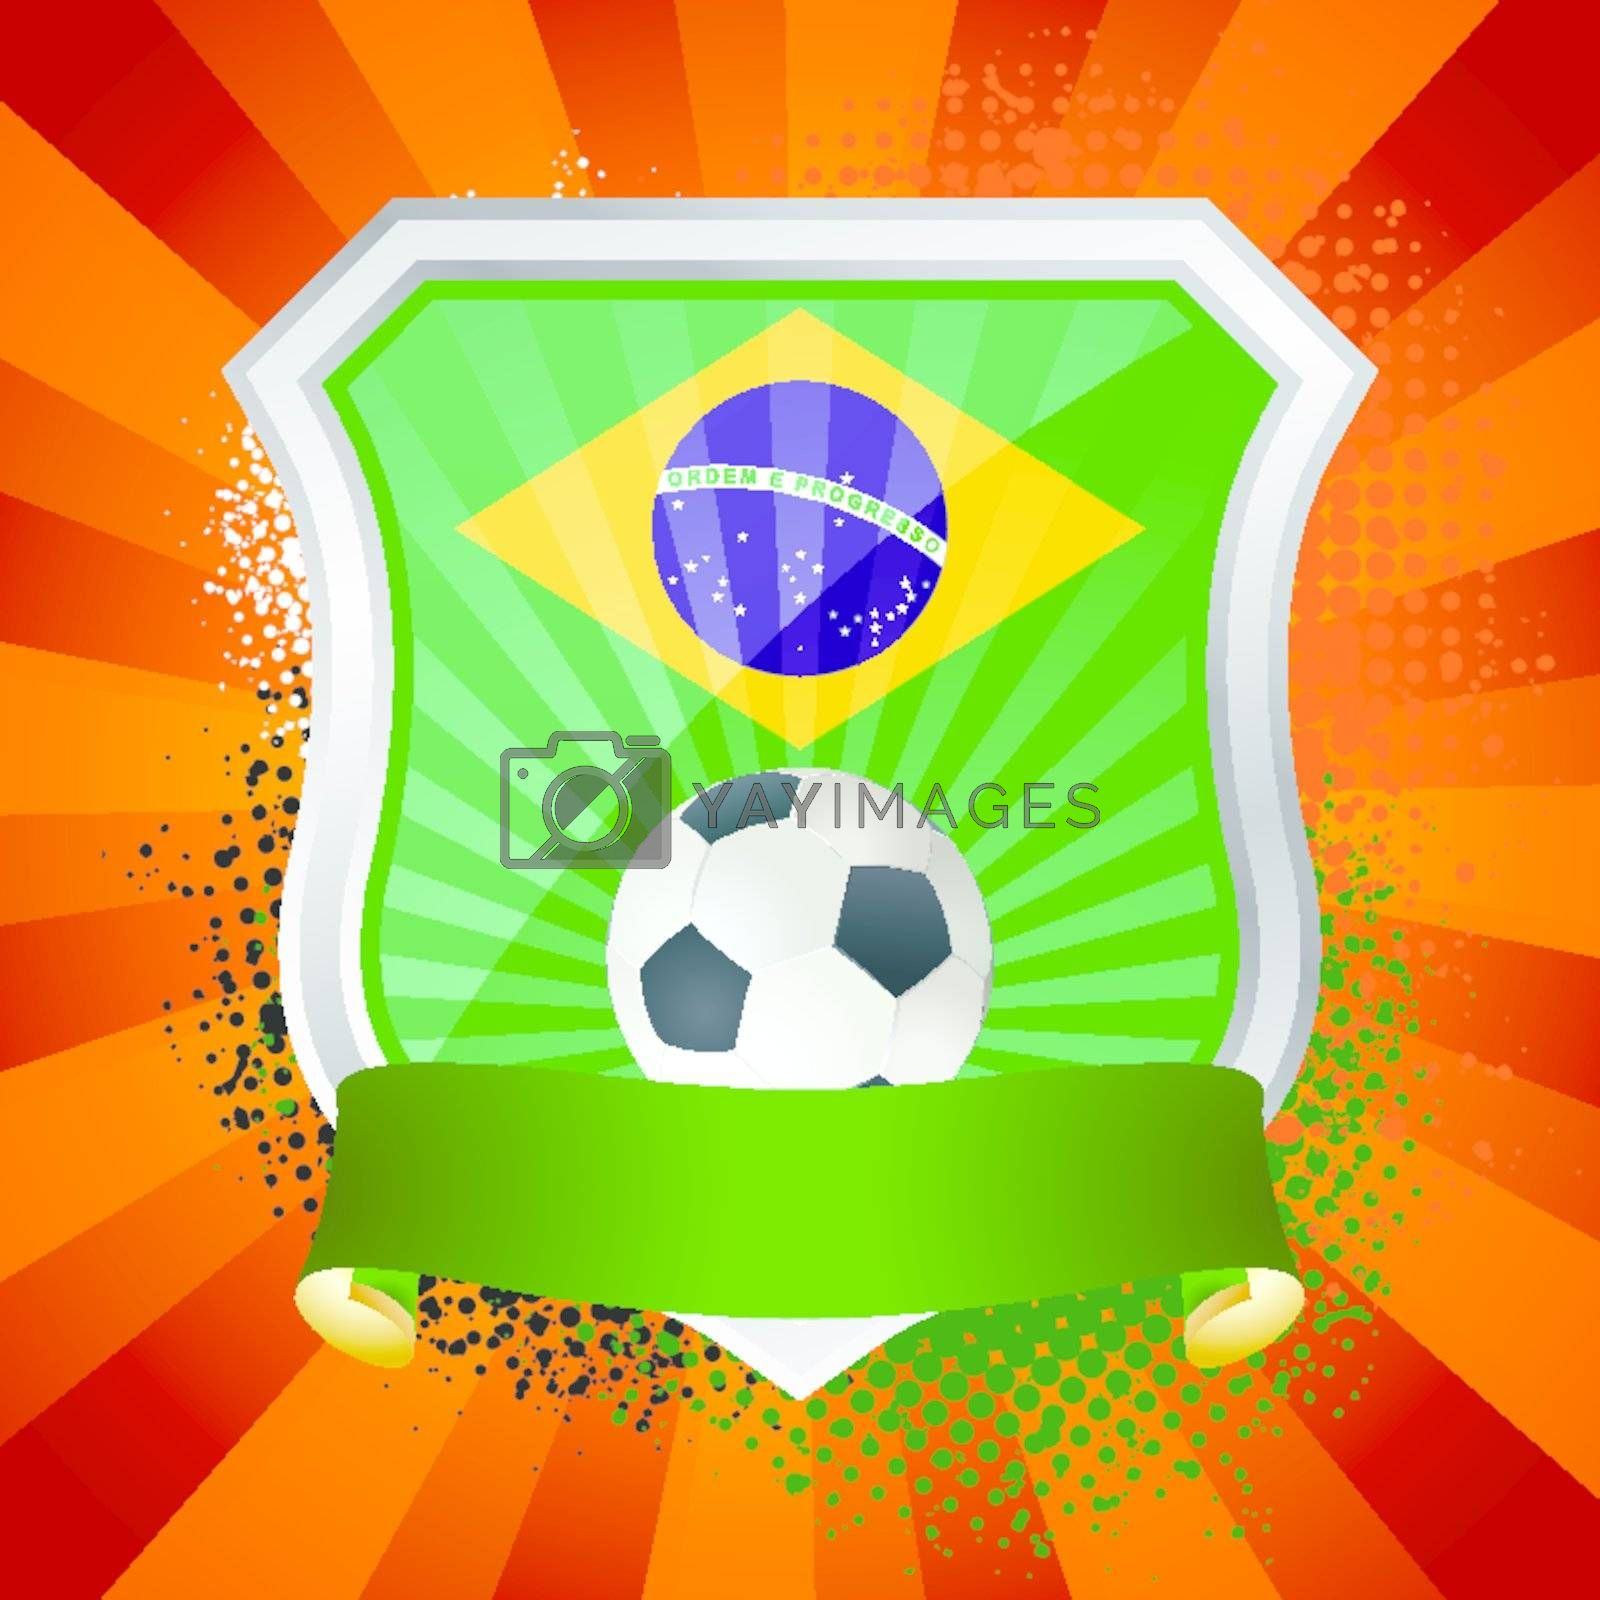 EPS 10. Shiny metal shield on bright background with flag of Republica Federativa do Brasil